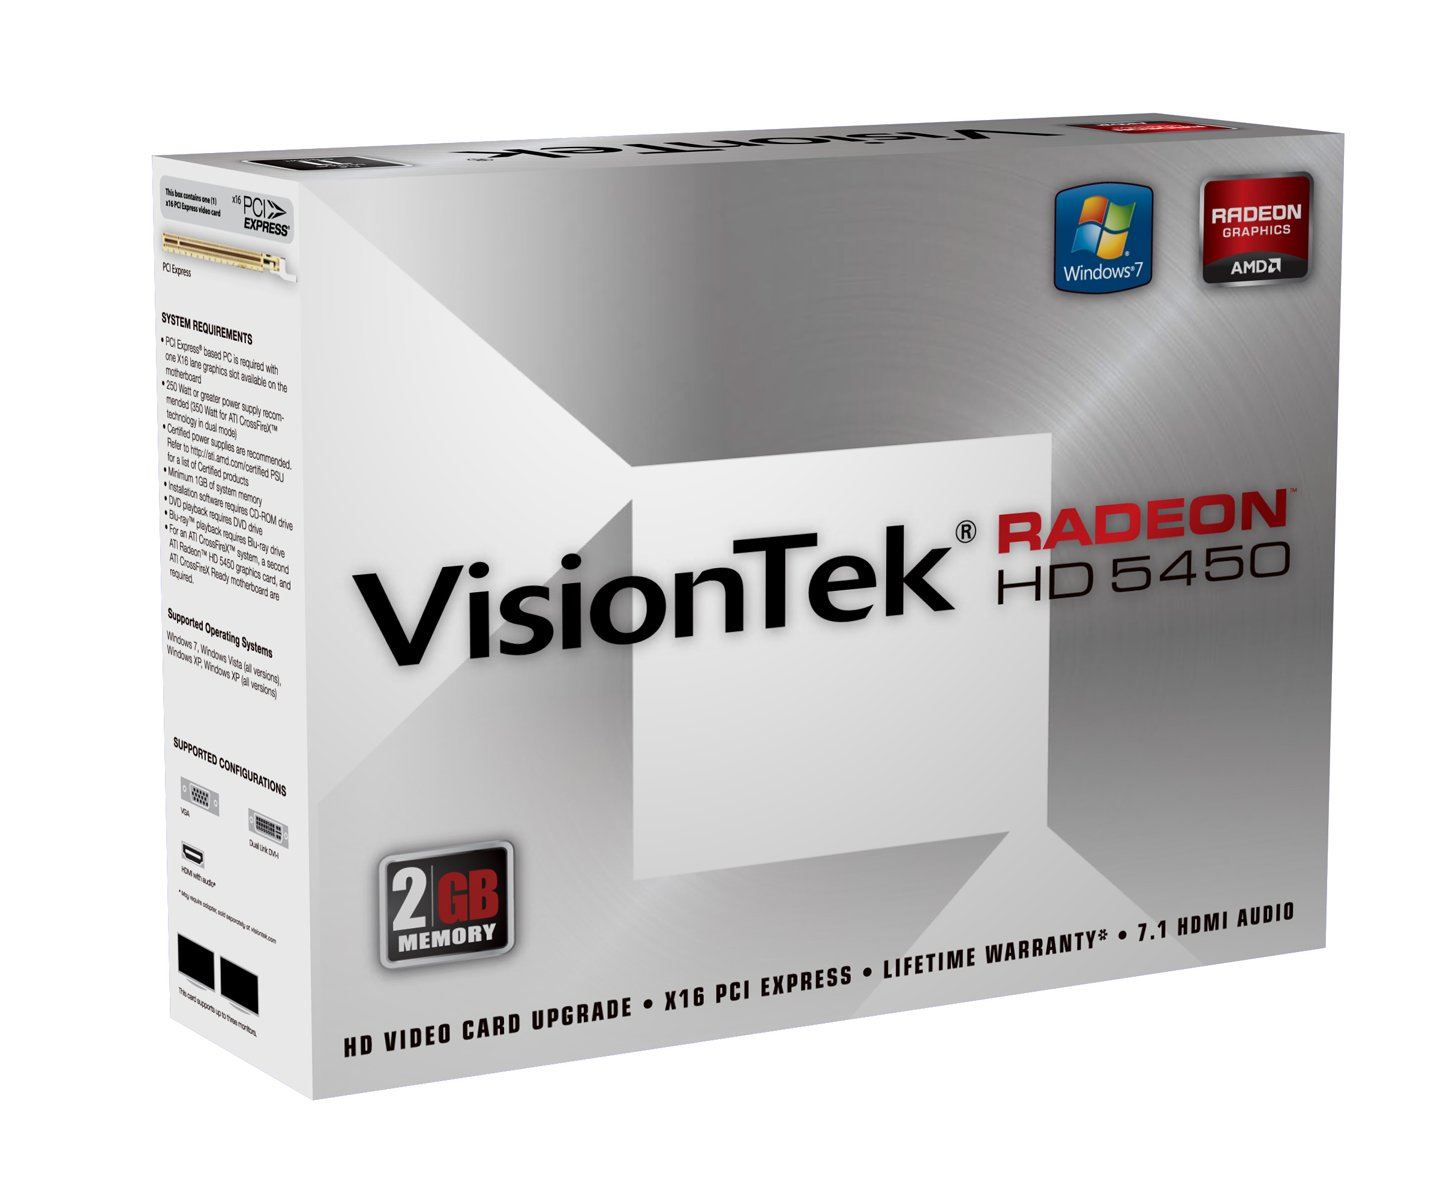 VisionTek Products, Llc - Visiontek 900356 Radeon Hd 5450 Graphic Card - 2 Gb Ddr3 Sdram - Pci Express 2.1 X16 - Crossfirex - Hdmi - Dvi - Vga ''Product Category: Video Cards/Graphic Cards''